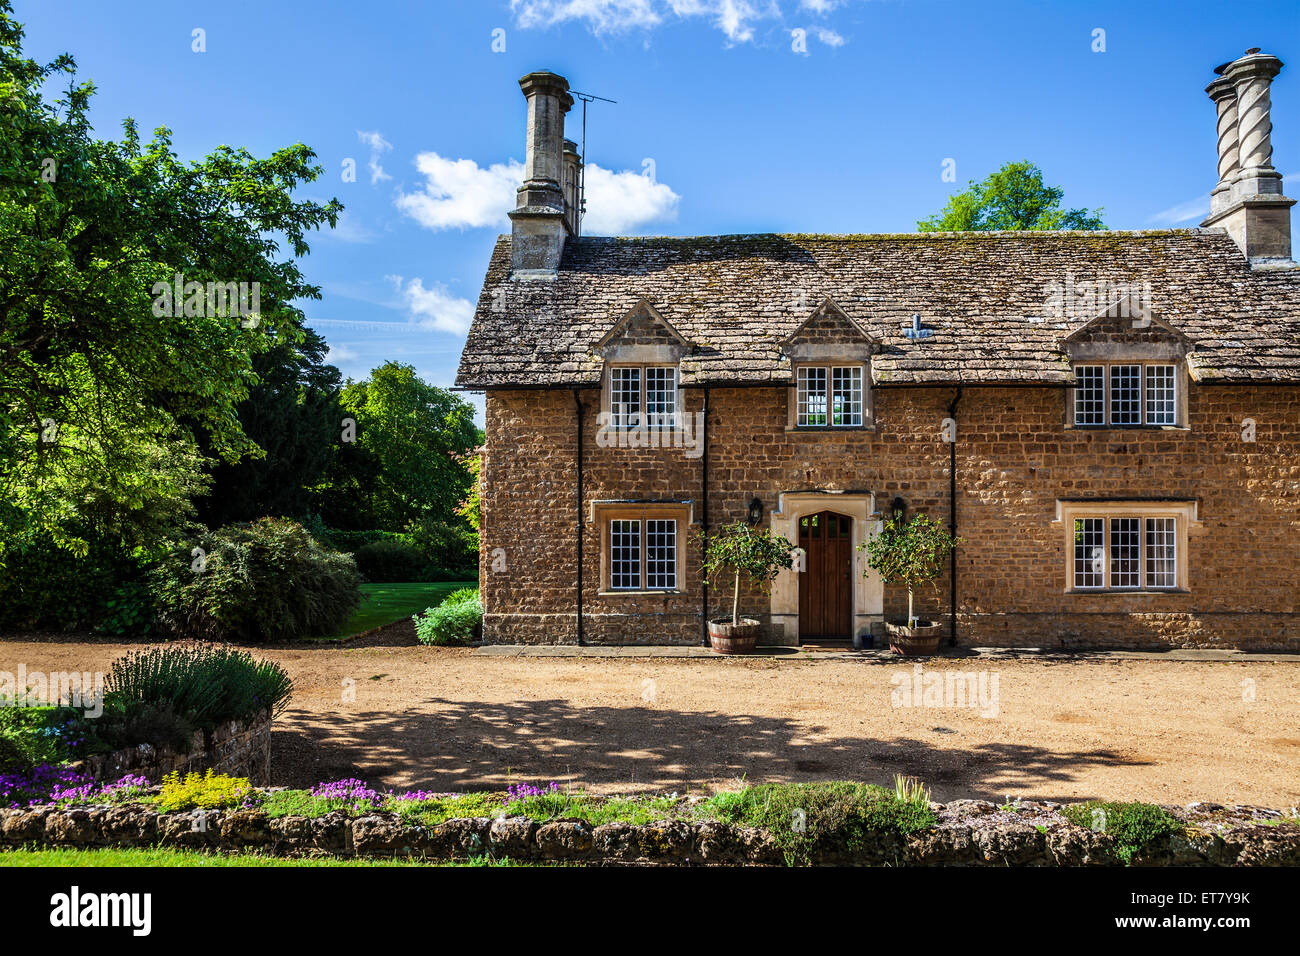 Queenwood, the Georgian Lodge set in the grounds of the Bowood Estate in Wiltshire. - Stock Image